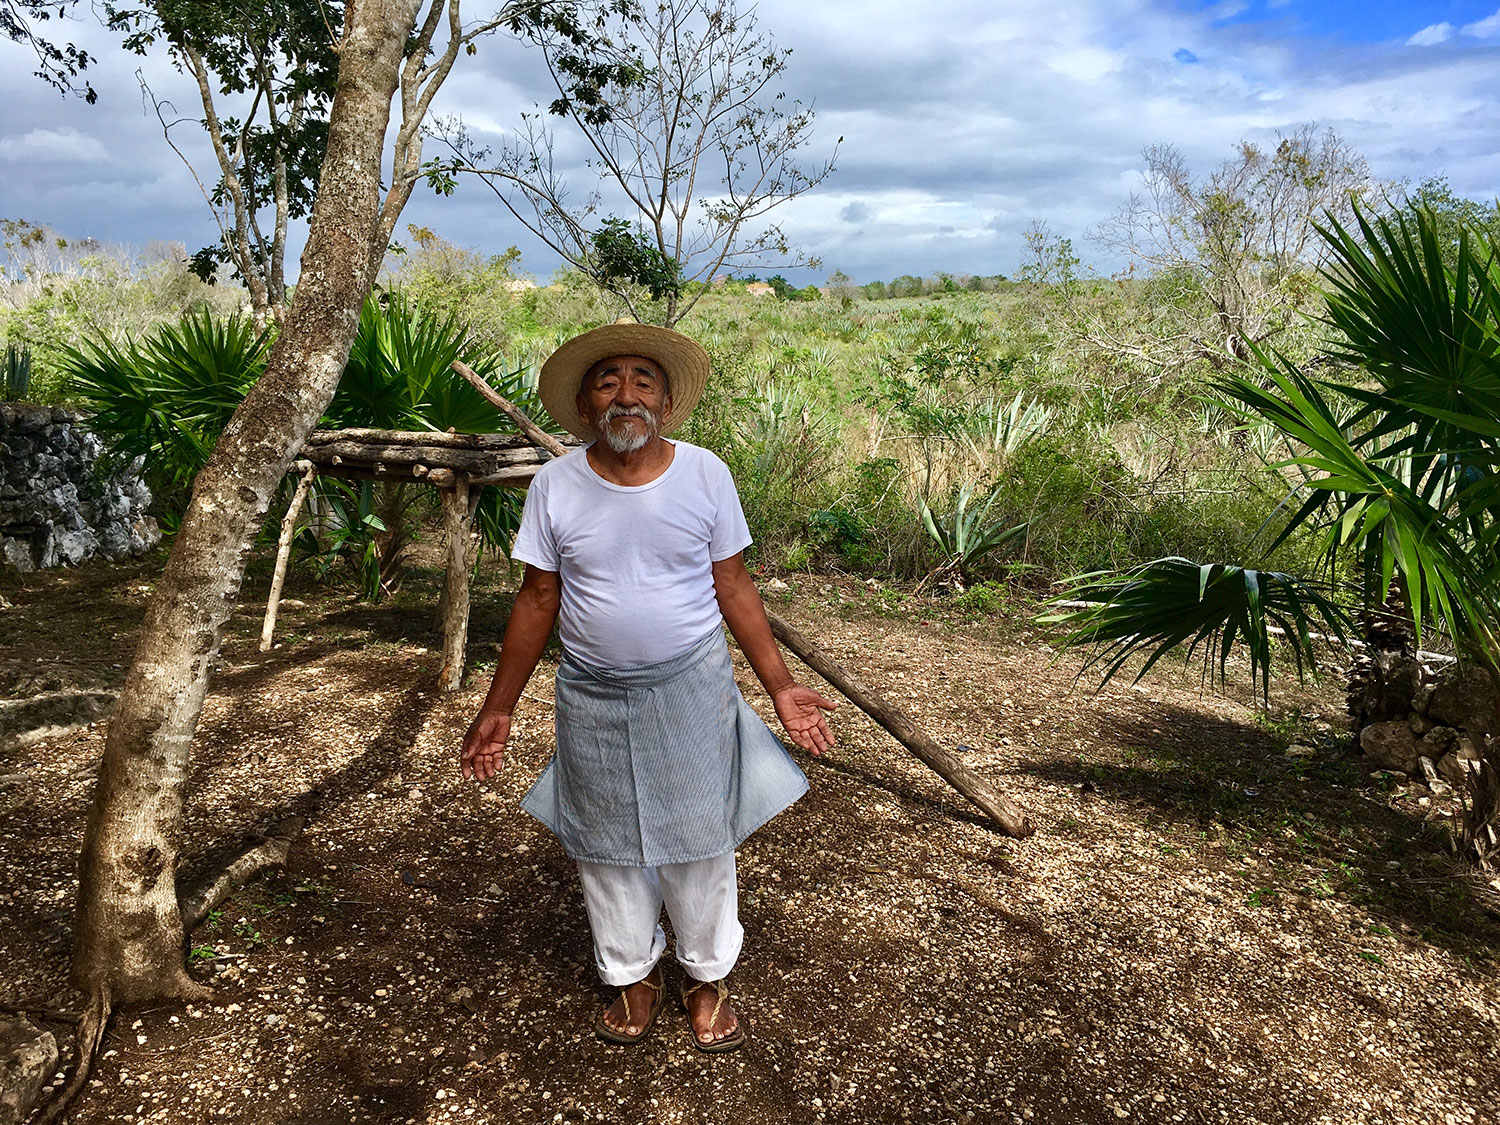 Don Antonio used to work on the hacienda as a child. Today he shows the visitors a Maya hut in the fields (on the right).